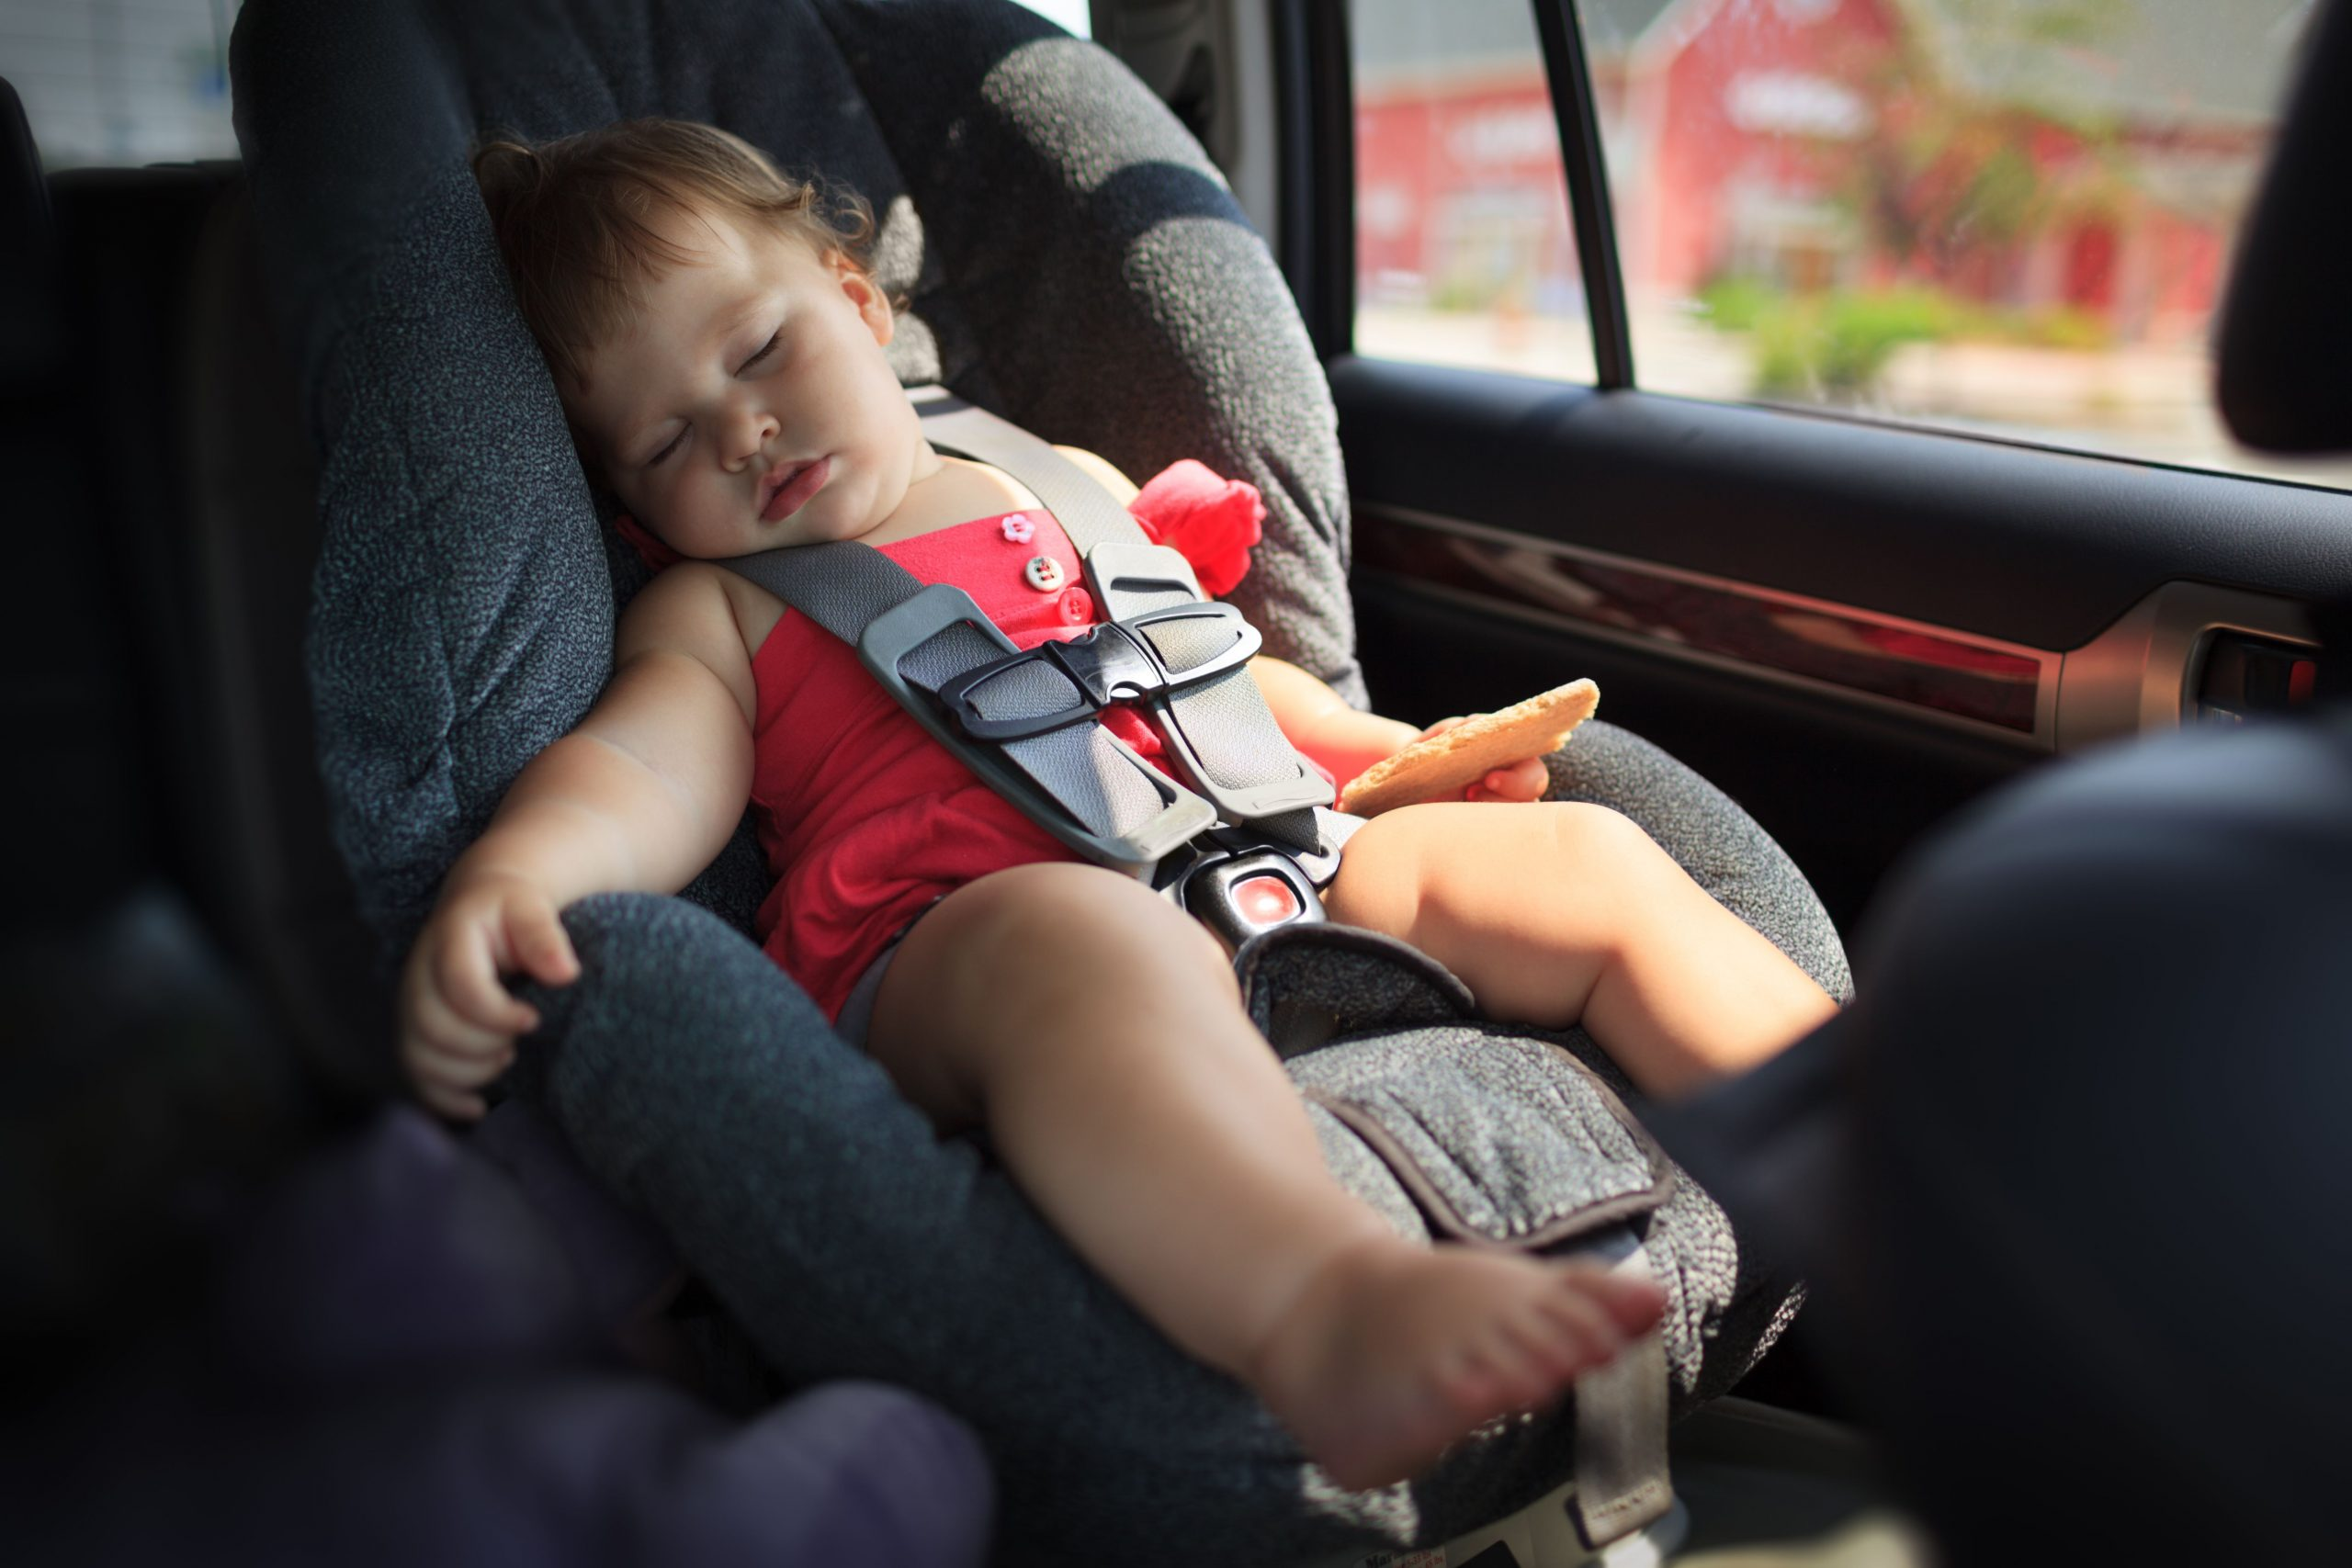 The Biggest Design Trends for the Automotive Industry 2020 - passenger comfort